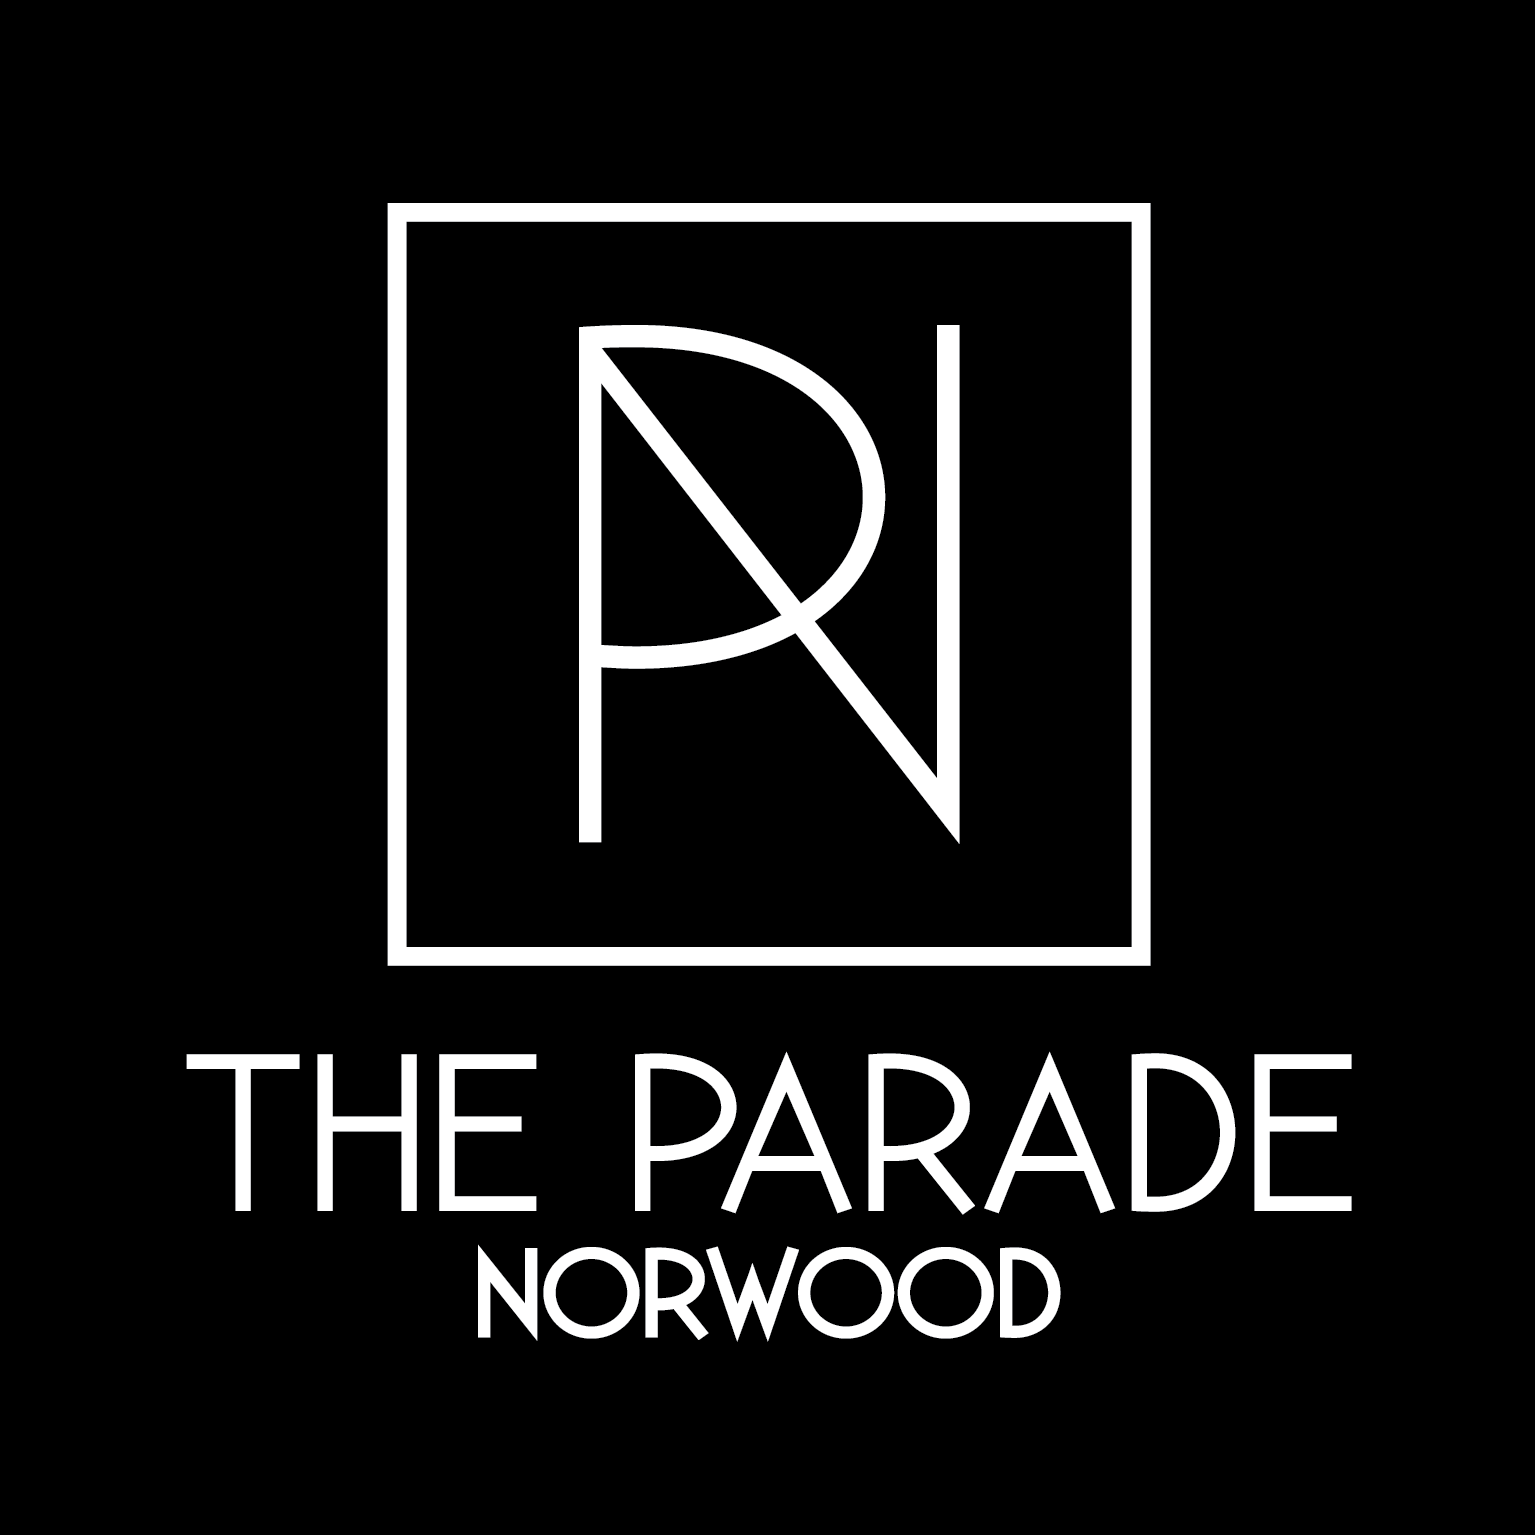 Logo for The Parade, Norwood